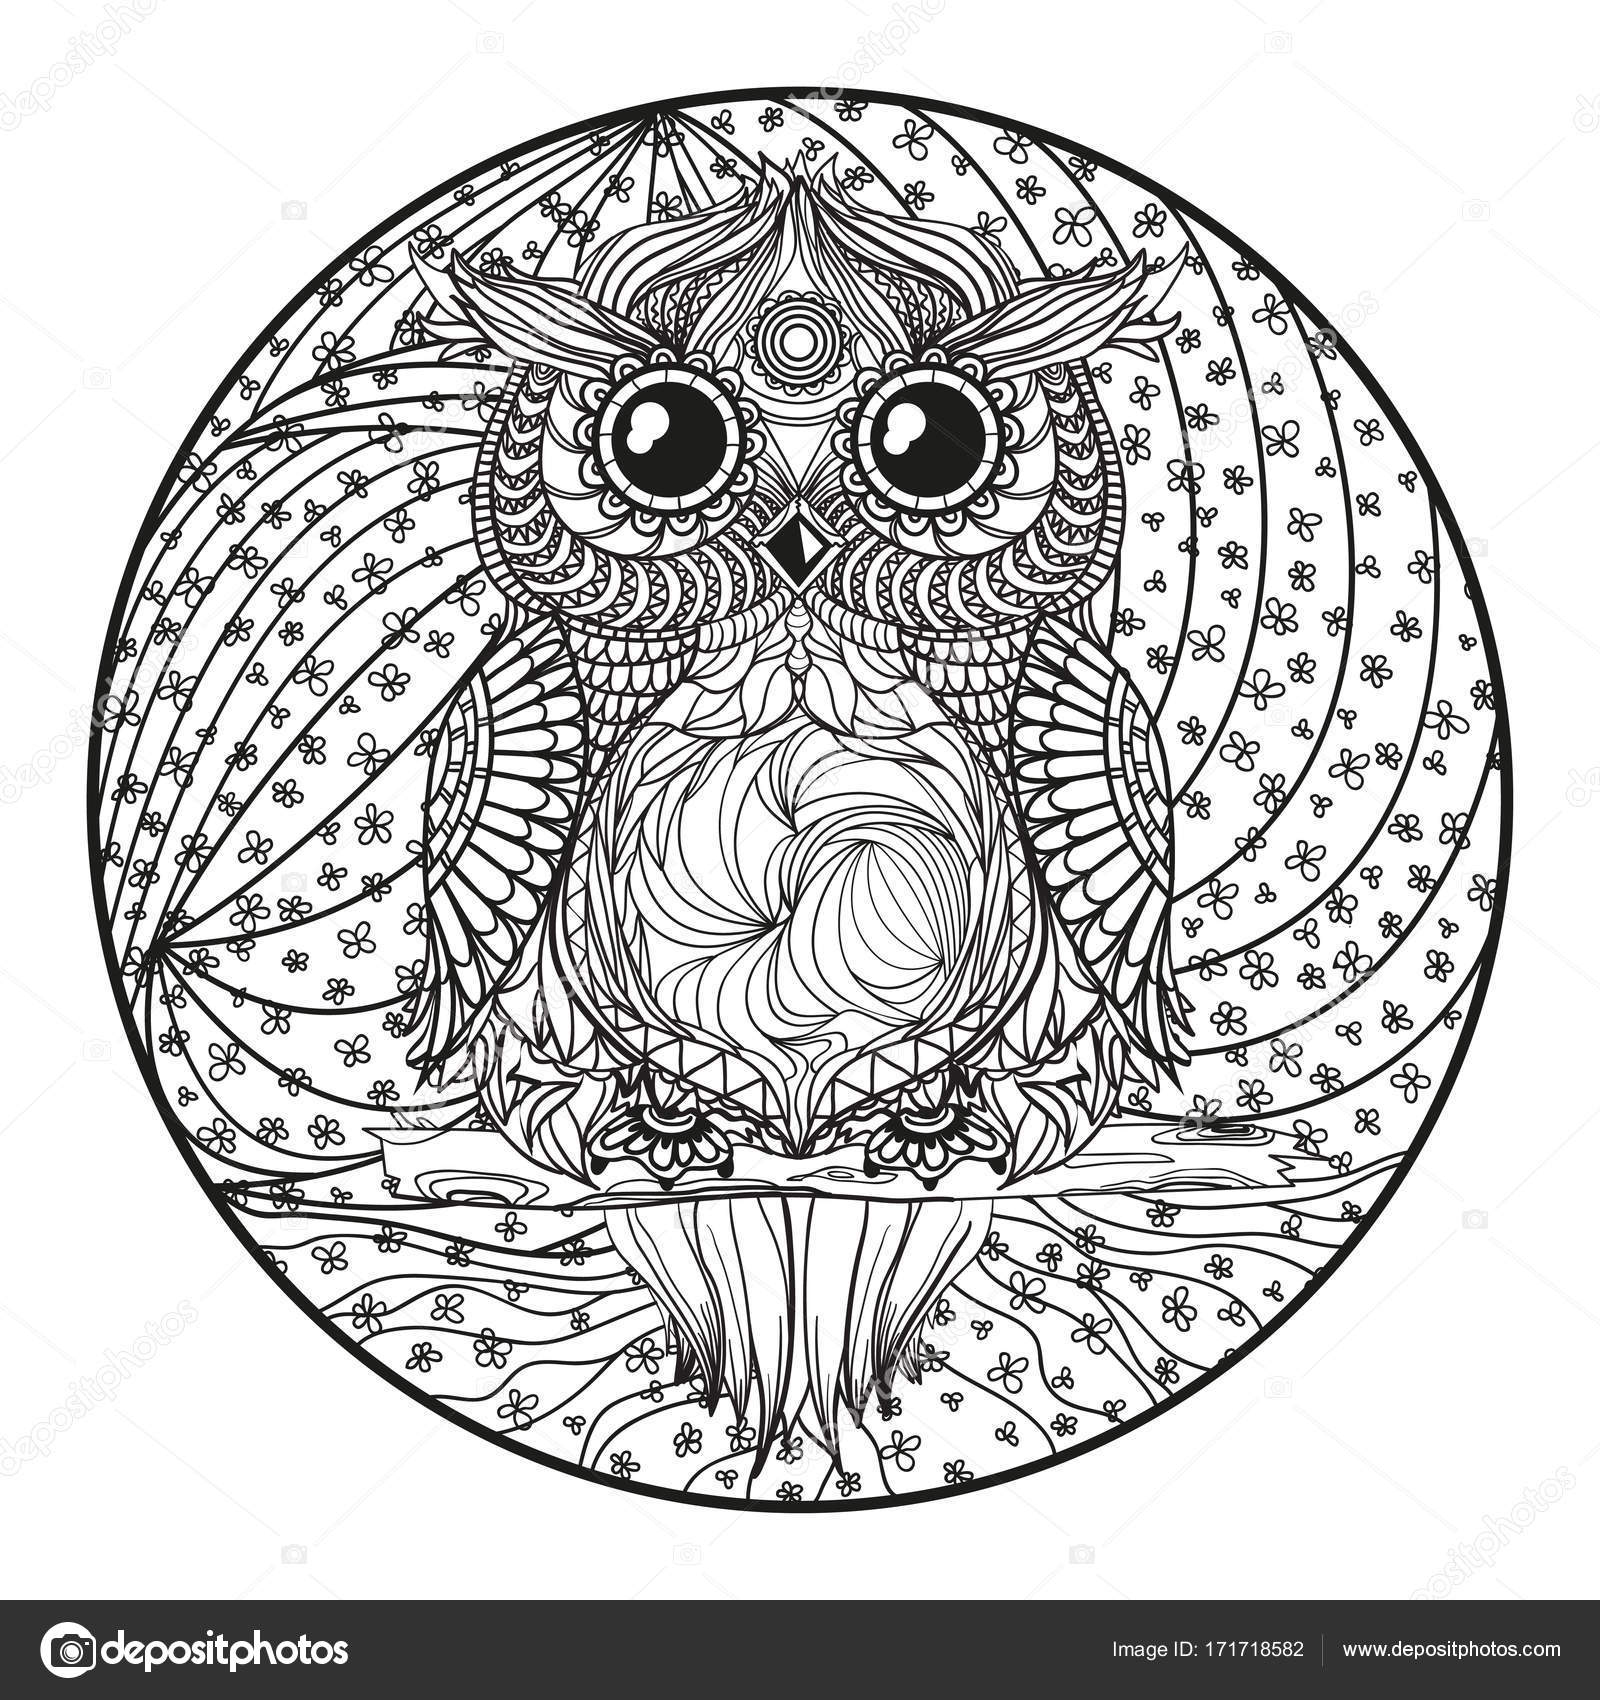 Mandala Owl Zentangle Stock Photo 169 Mikabesfamilnaya